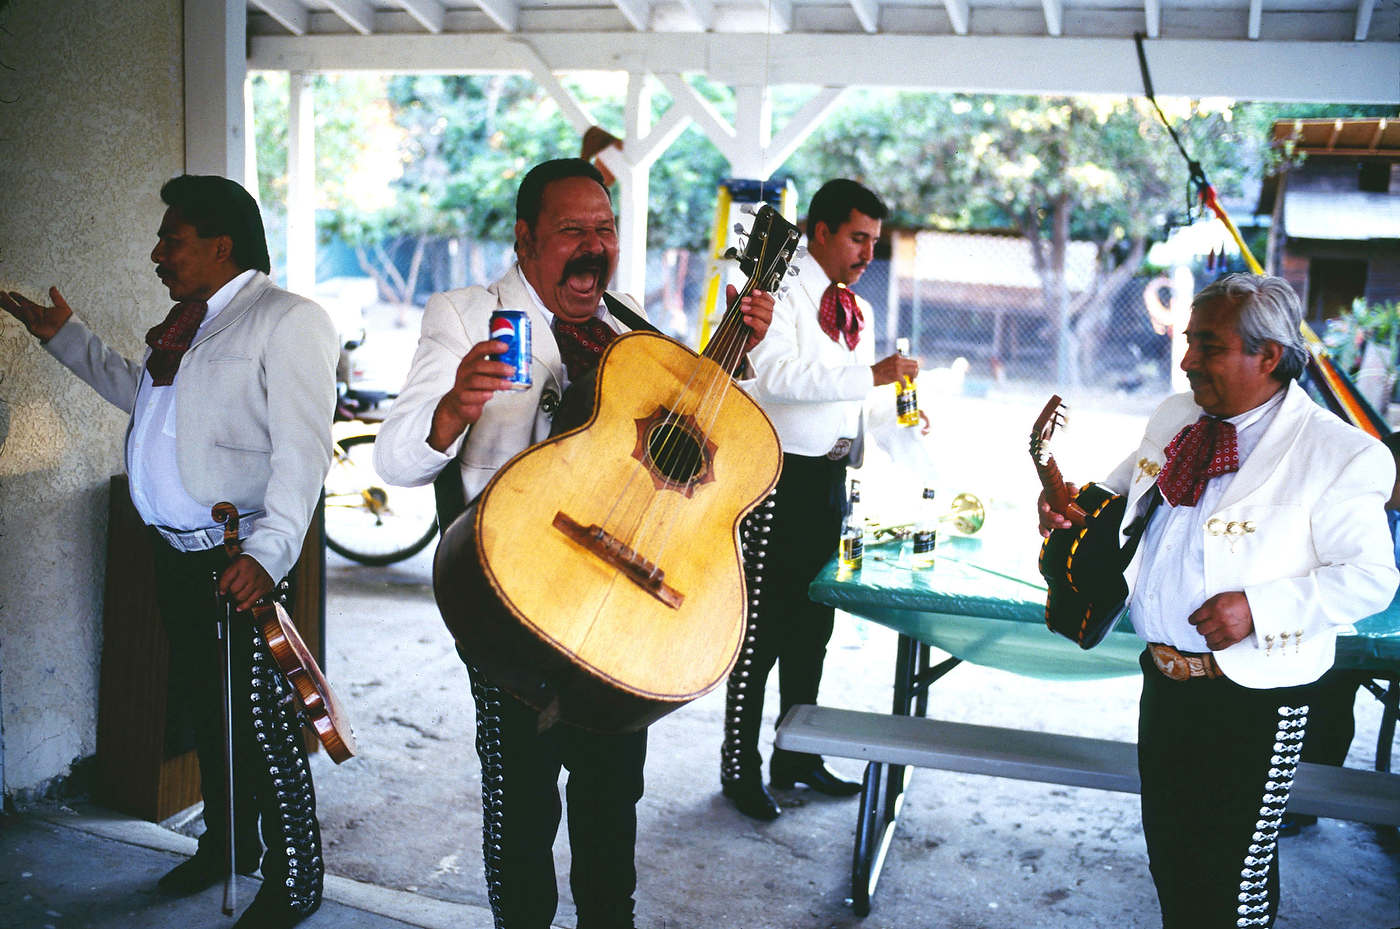 Mariachis_New14_013